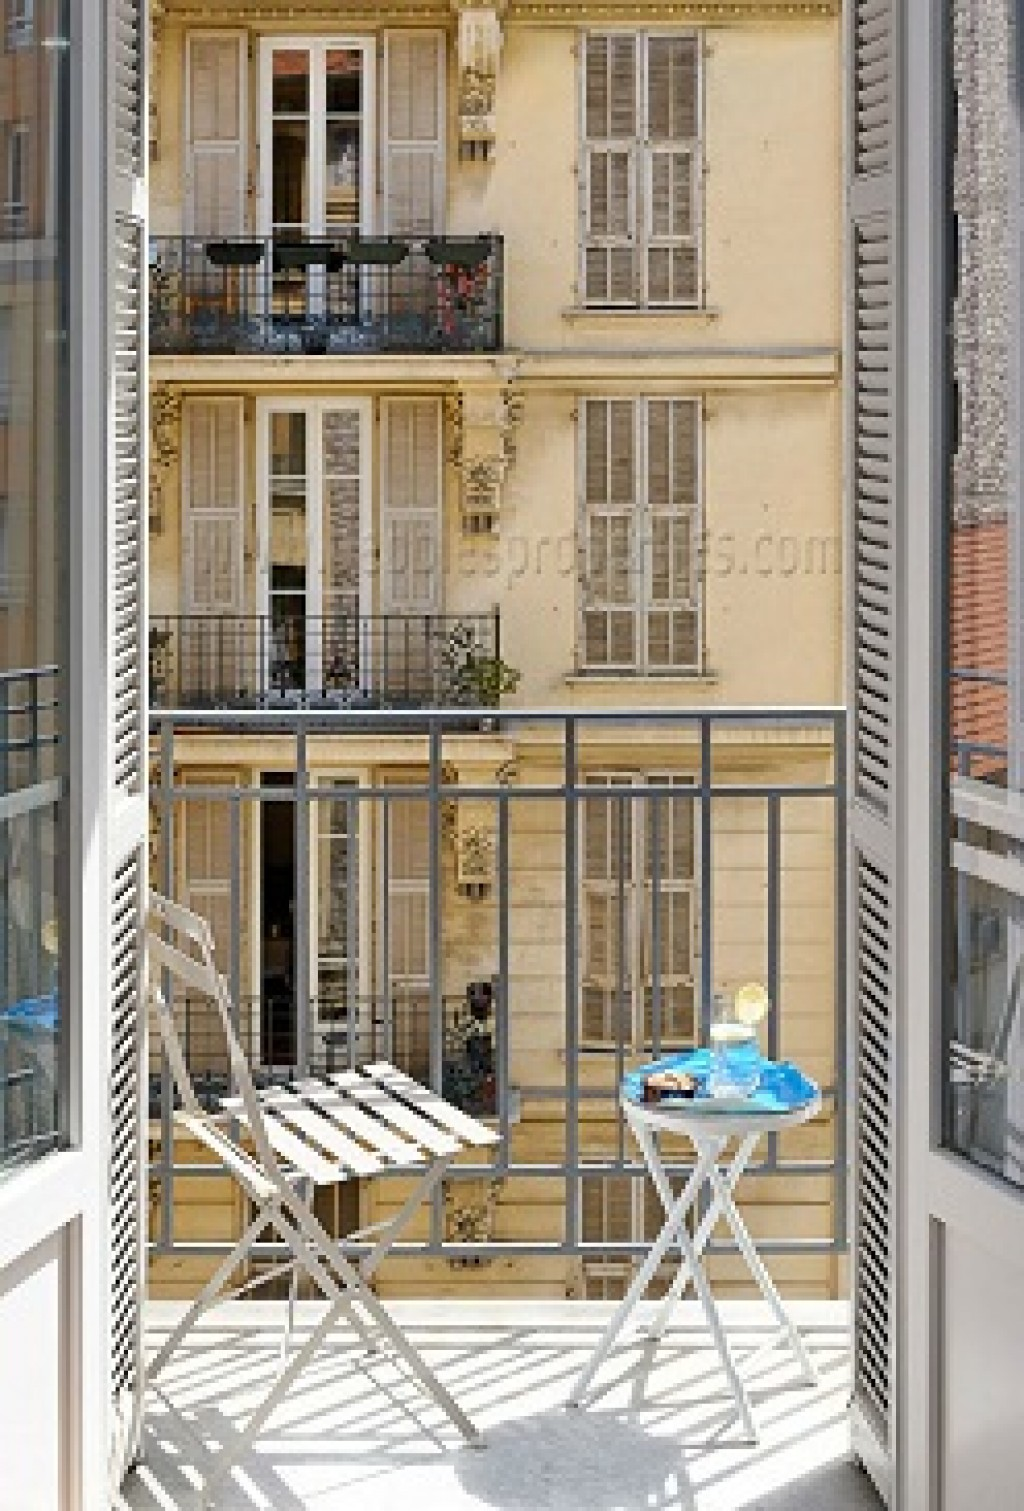 Images for Long Term Lets in France, Nice, Alpes-Maritimes EAID: BID:homefromhome